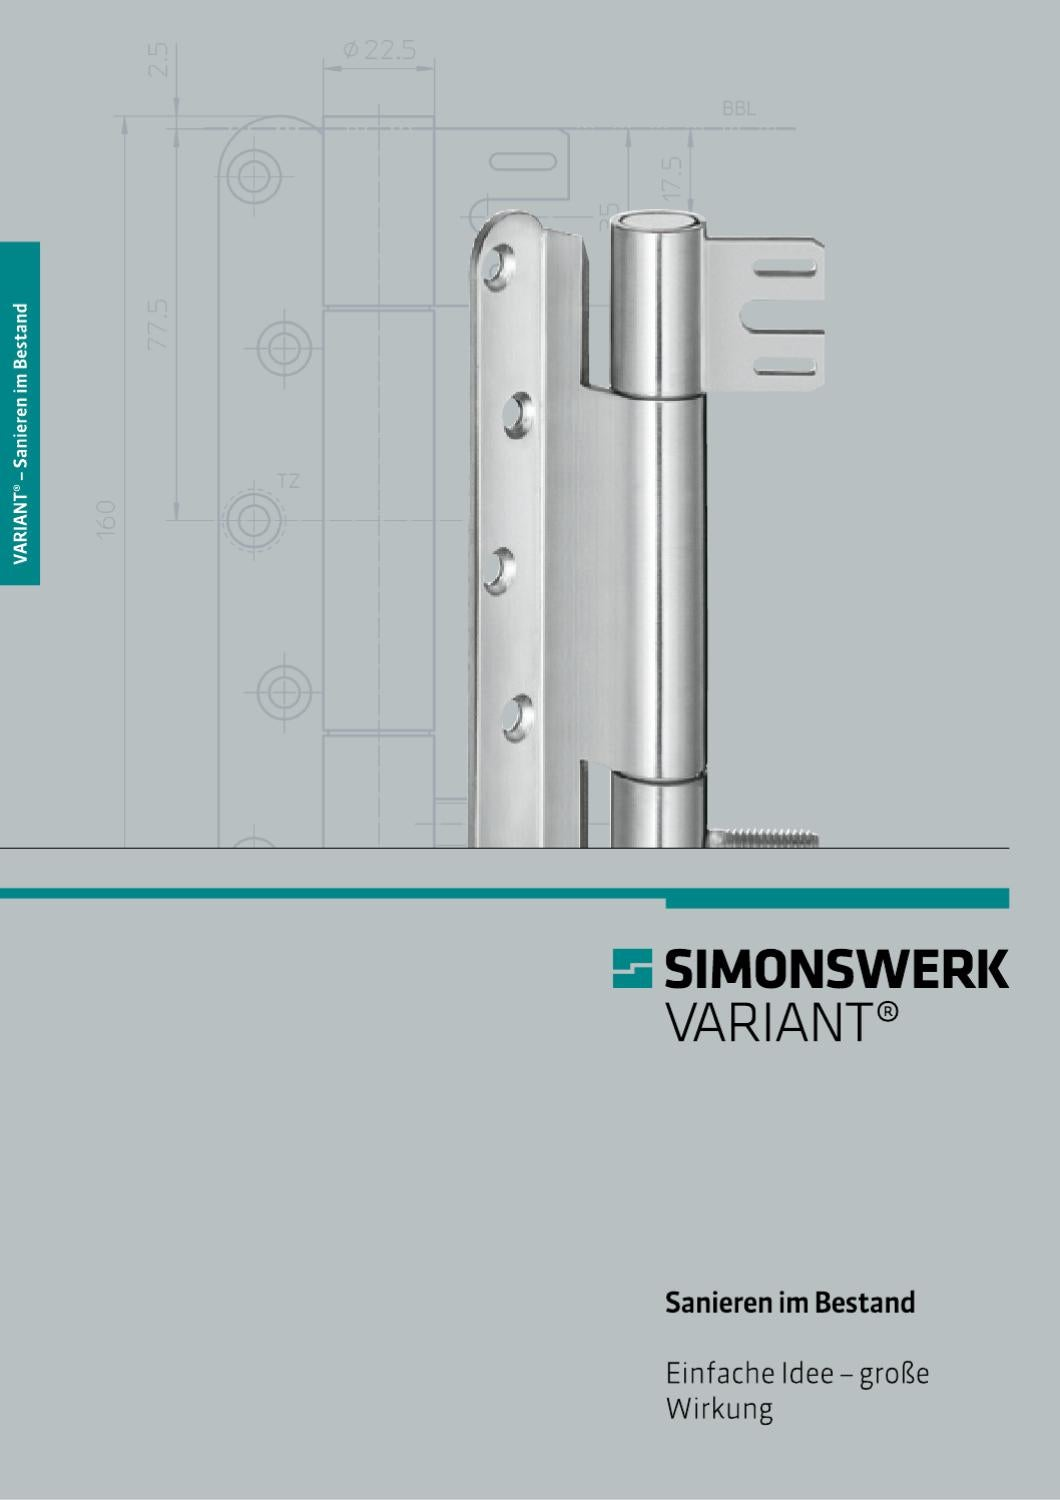 Holzzarge über Stahlzarge Simonswerk Variant® By Simonswerk Gmbh - Issuu